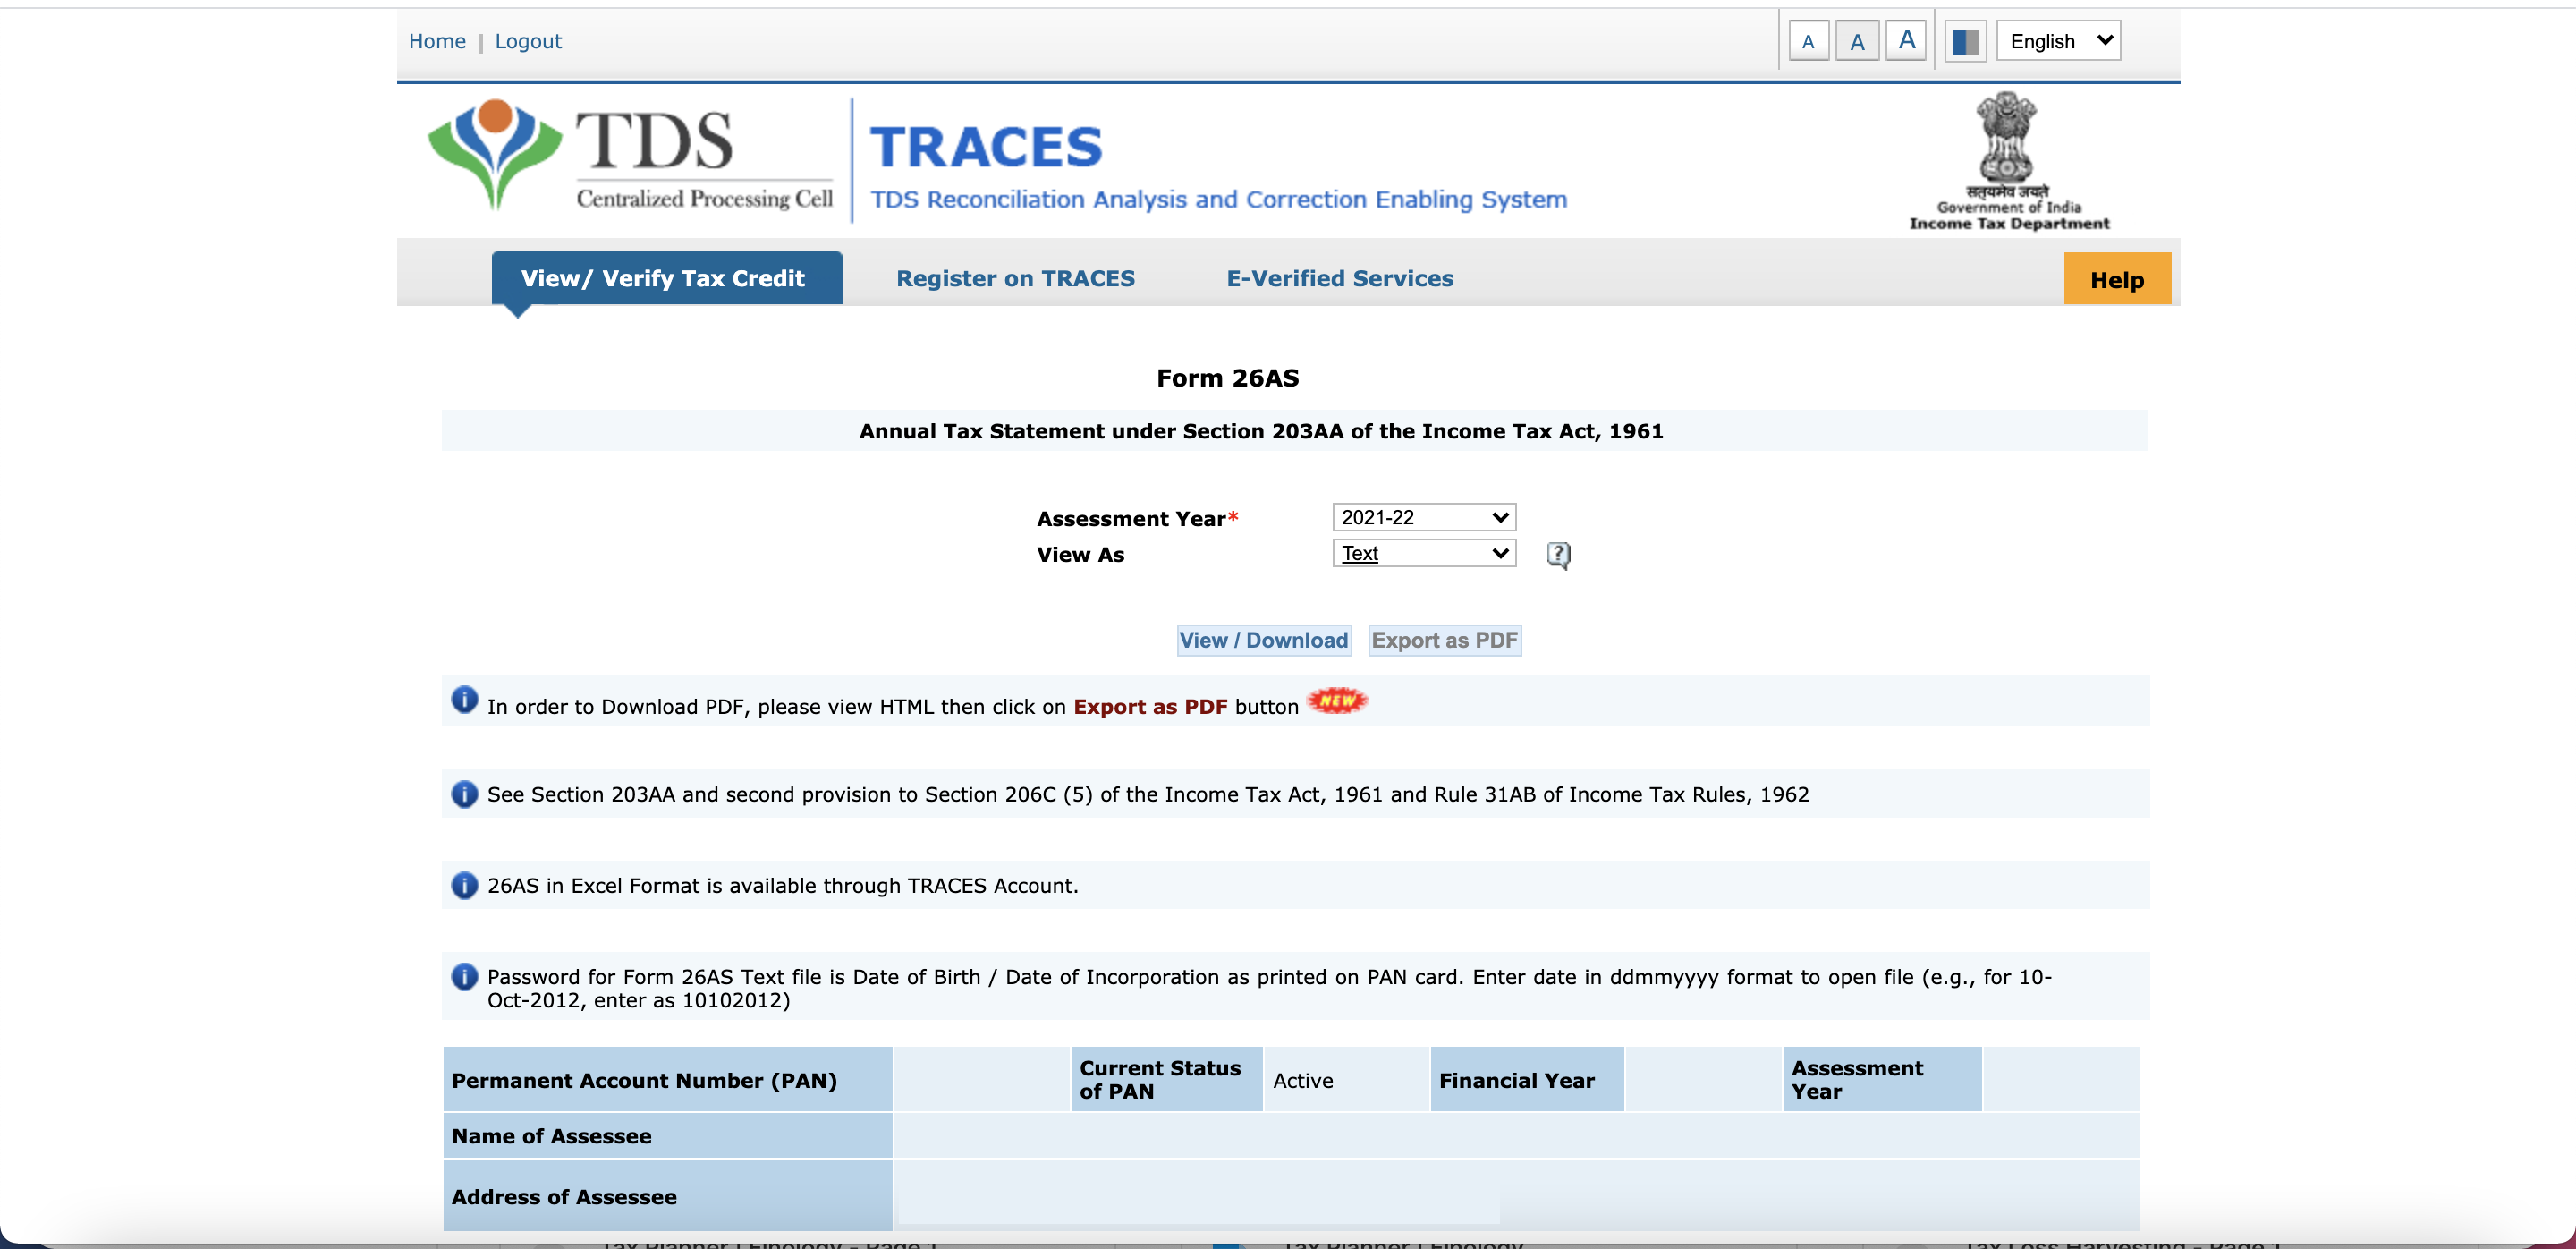 TRACES - Download Form 26AS